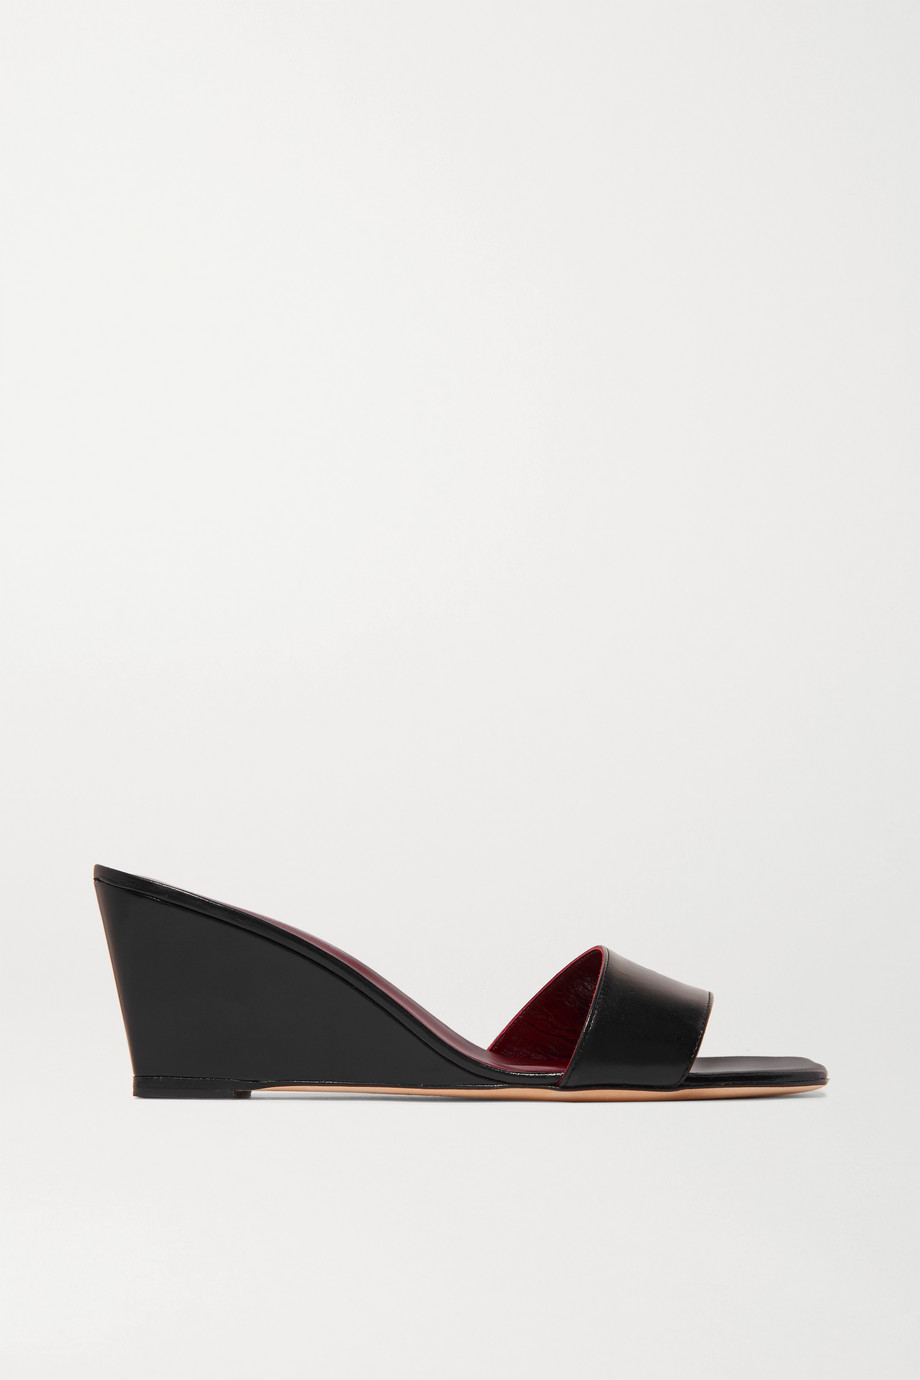 STAUD Billie leather wedge sandals